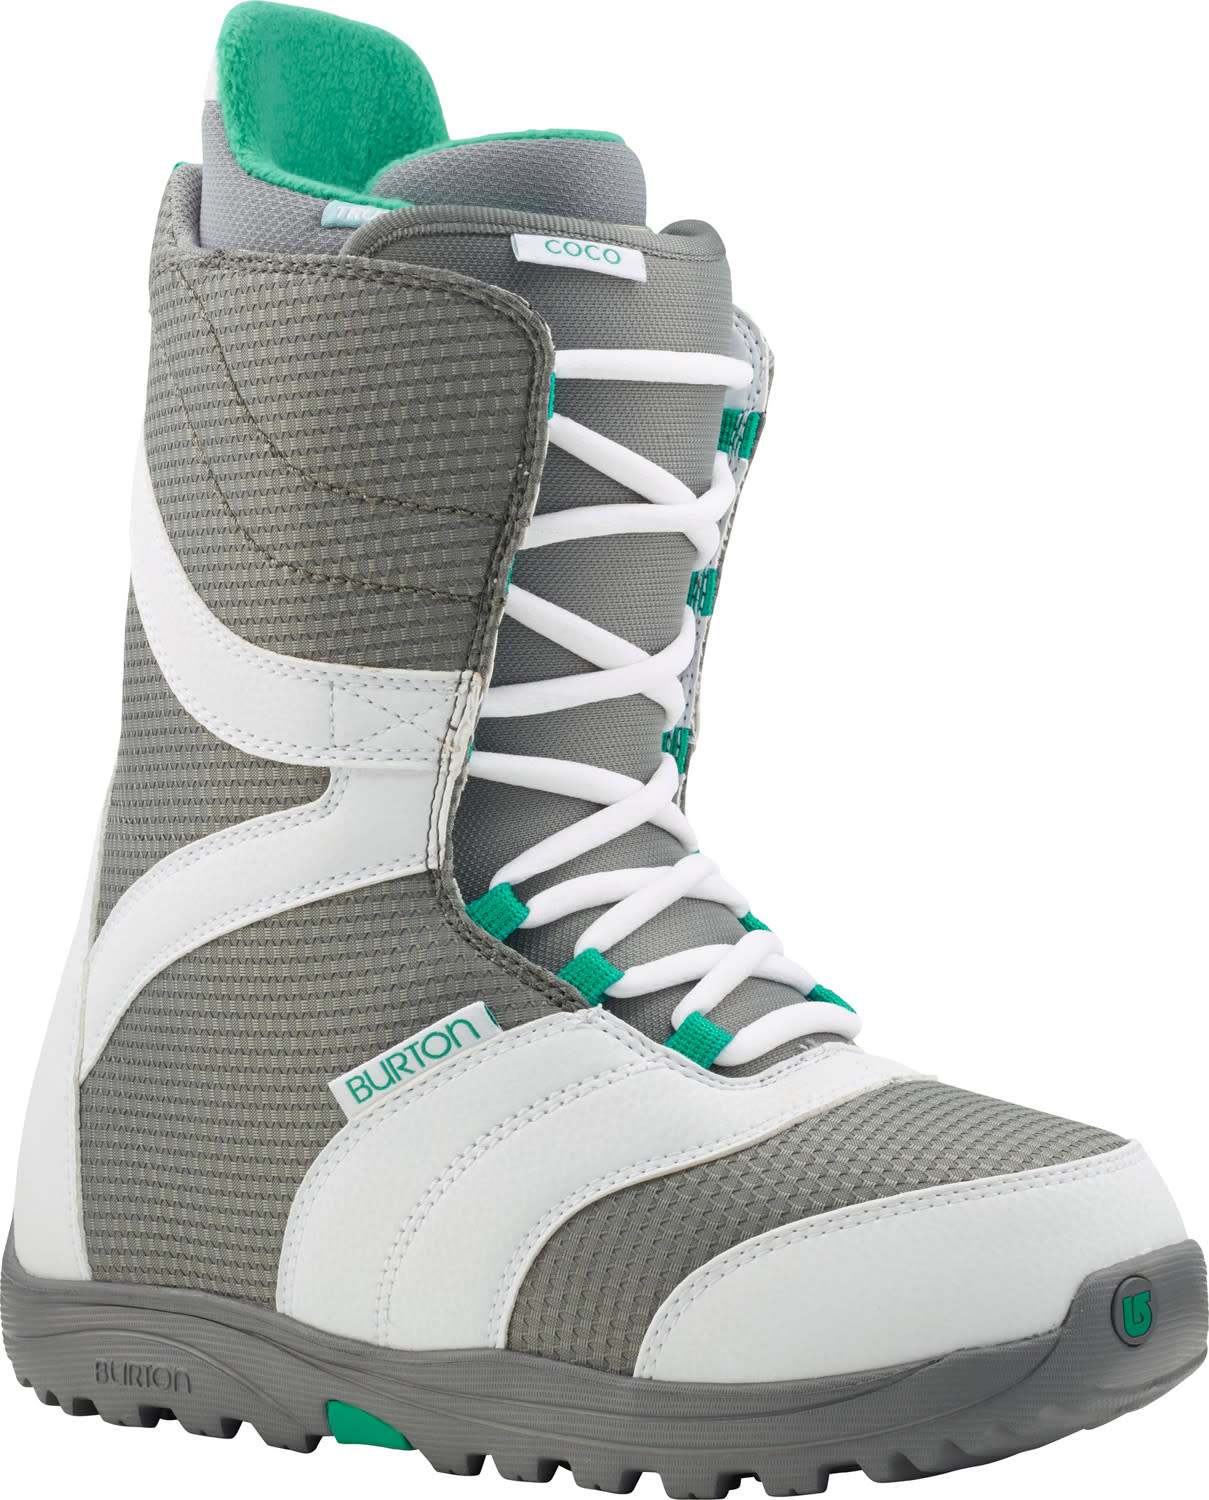 On sale burton coco snowboard boots womens up to 50 off for Housse burton snowboard